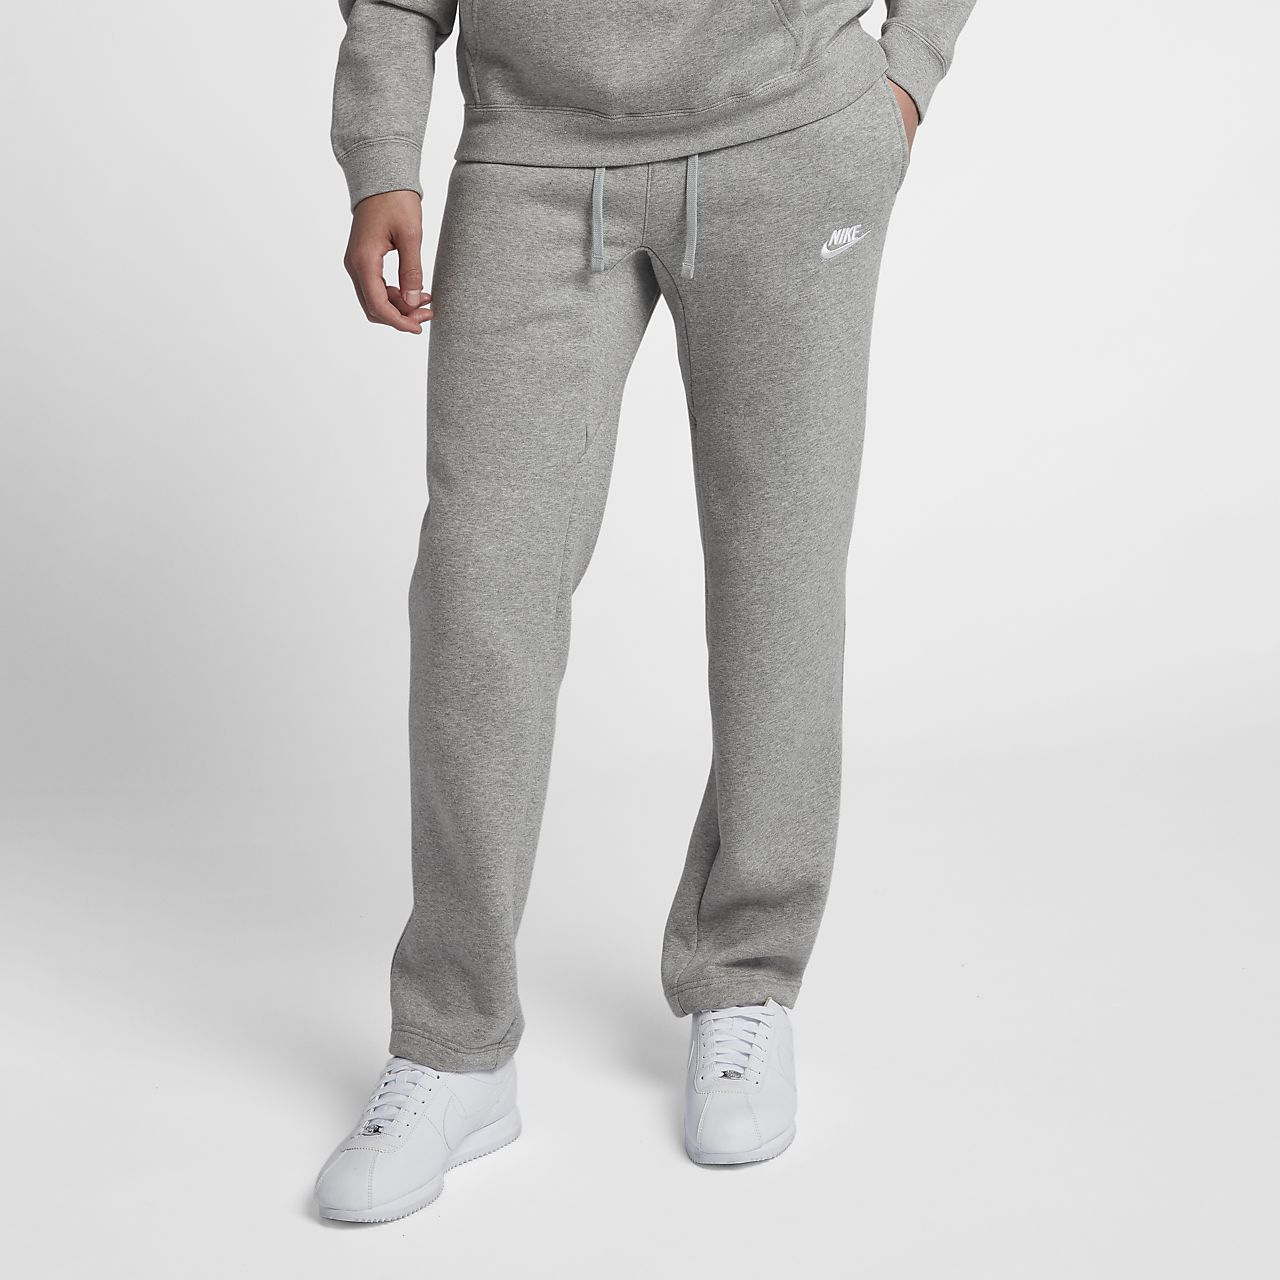 b37410ba Nike Sportswear Club Fleece Men's Pants